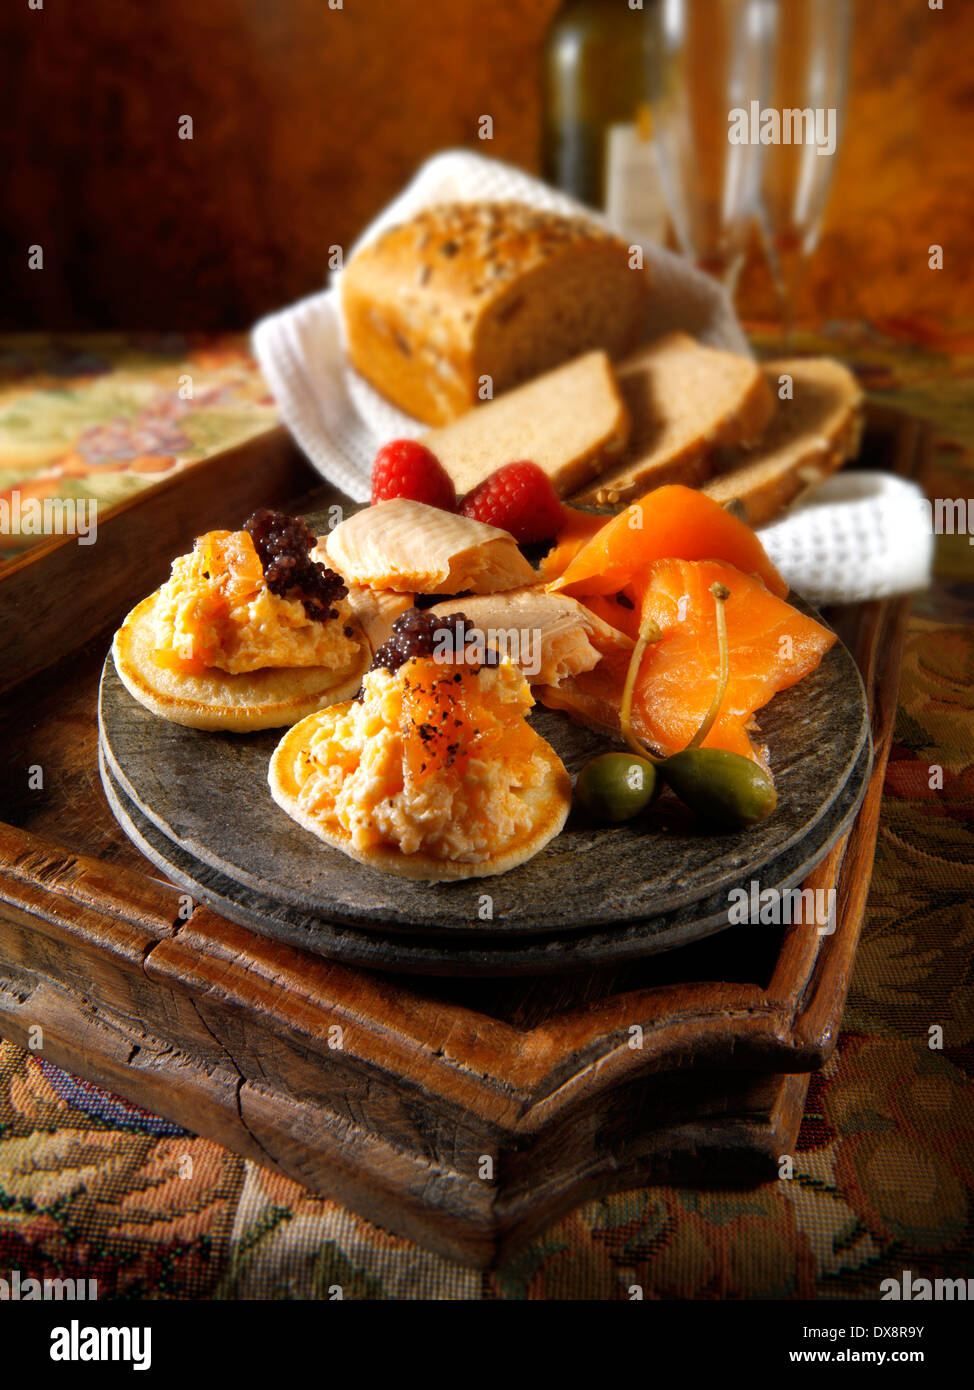 smoked salmon and scrambled egg on brown bread - Stock Image